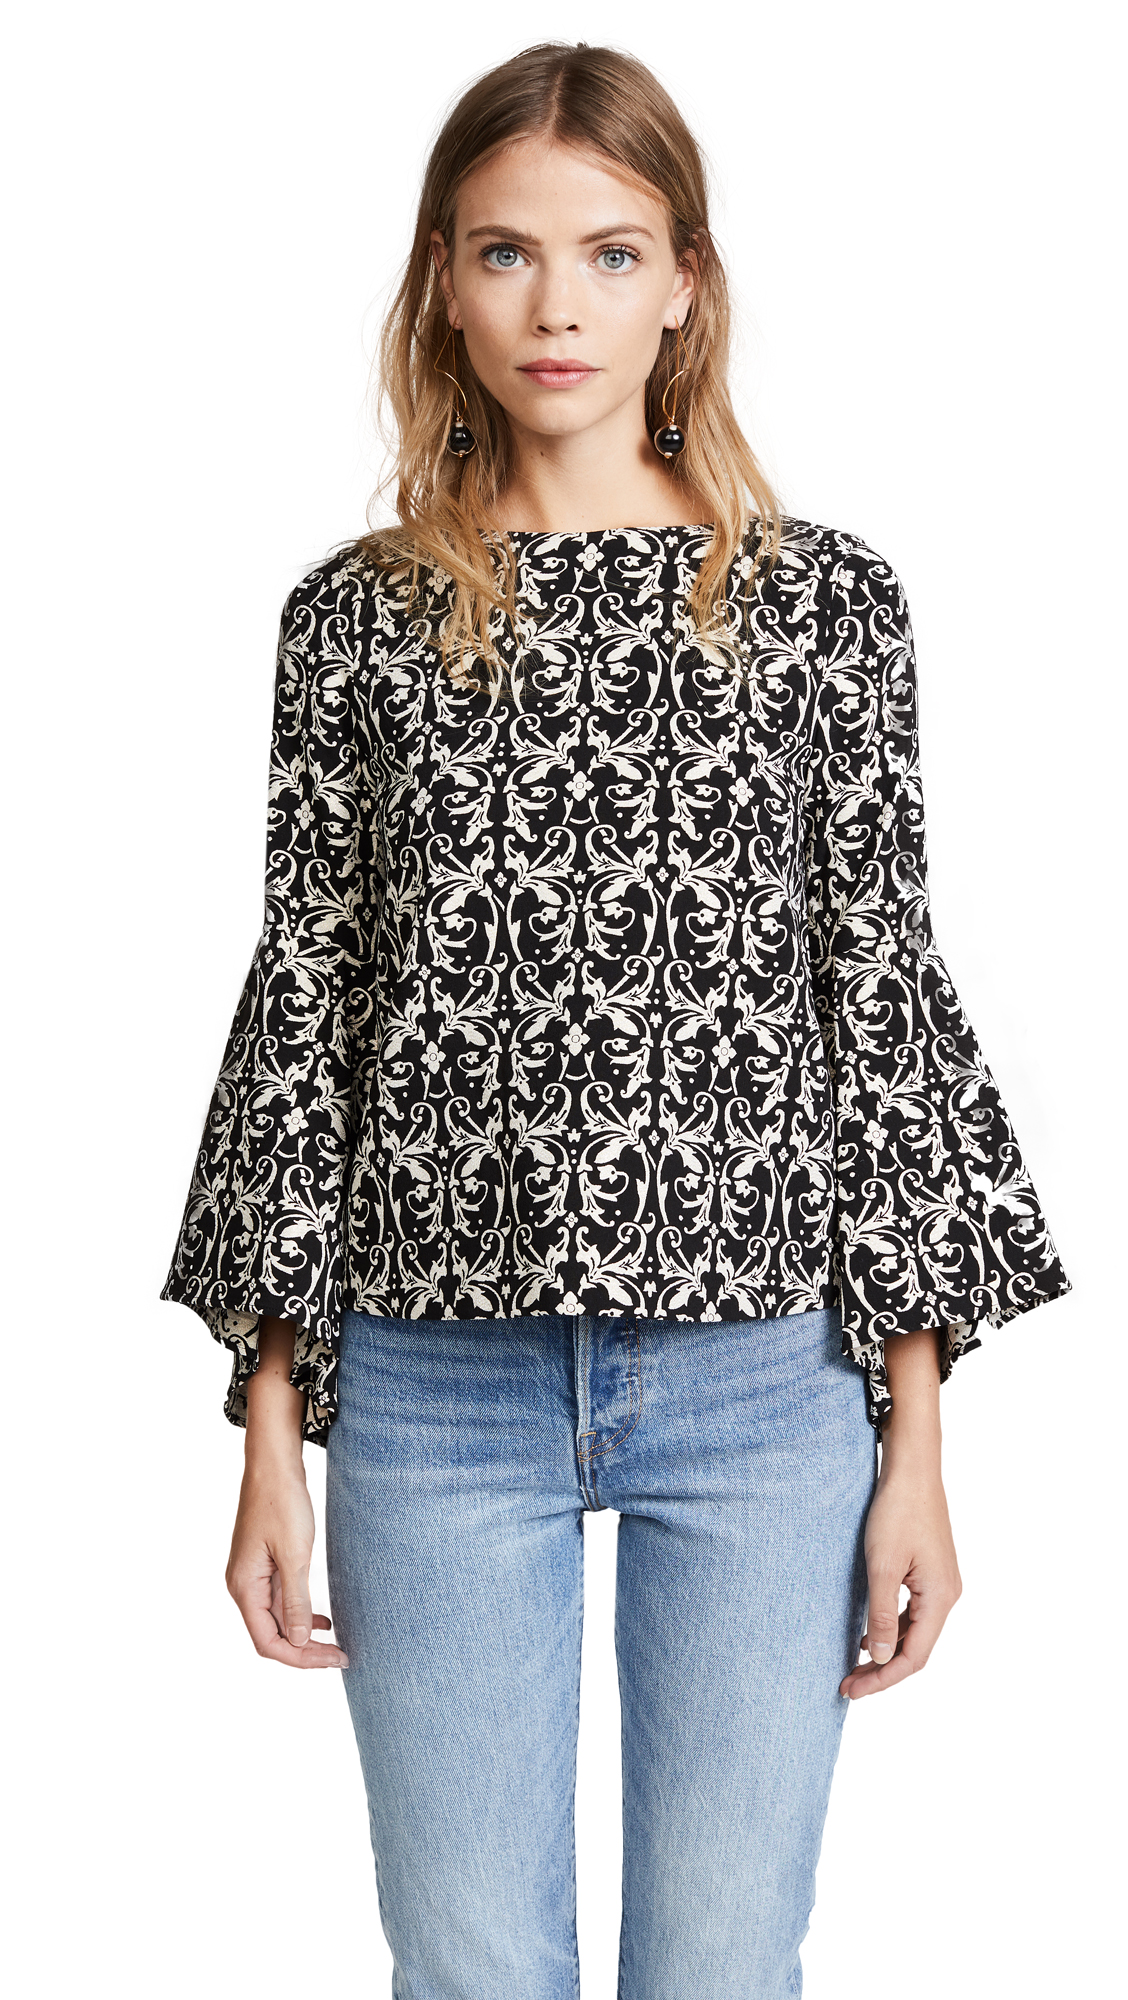 alice + olivia Baska Trumpet Sleeve Blouse - Black/Cream